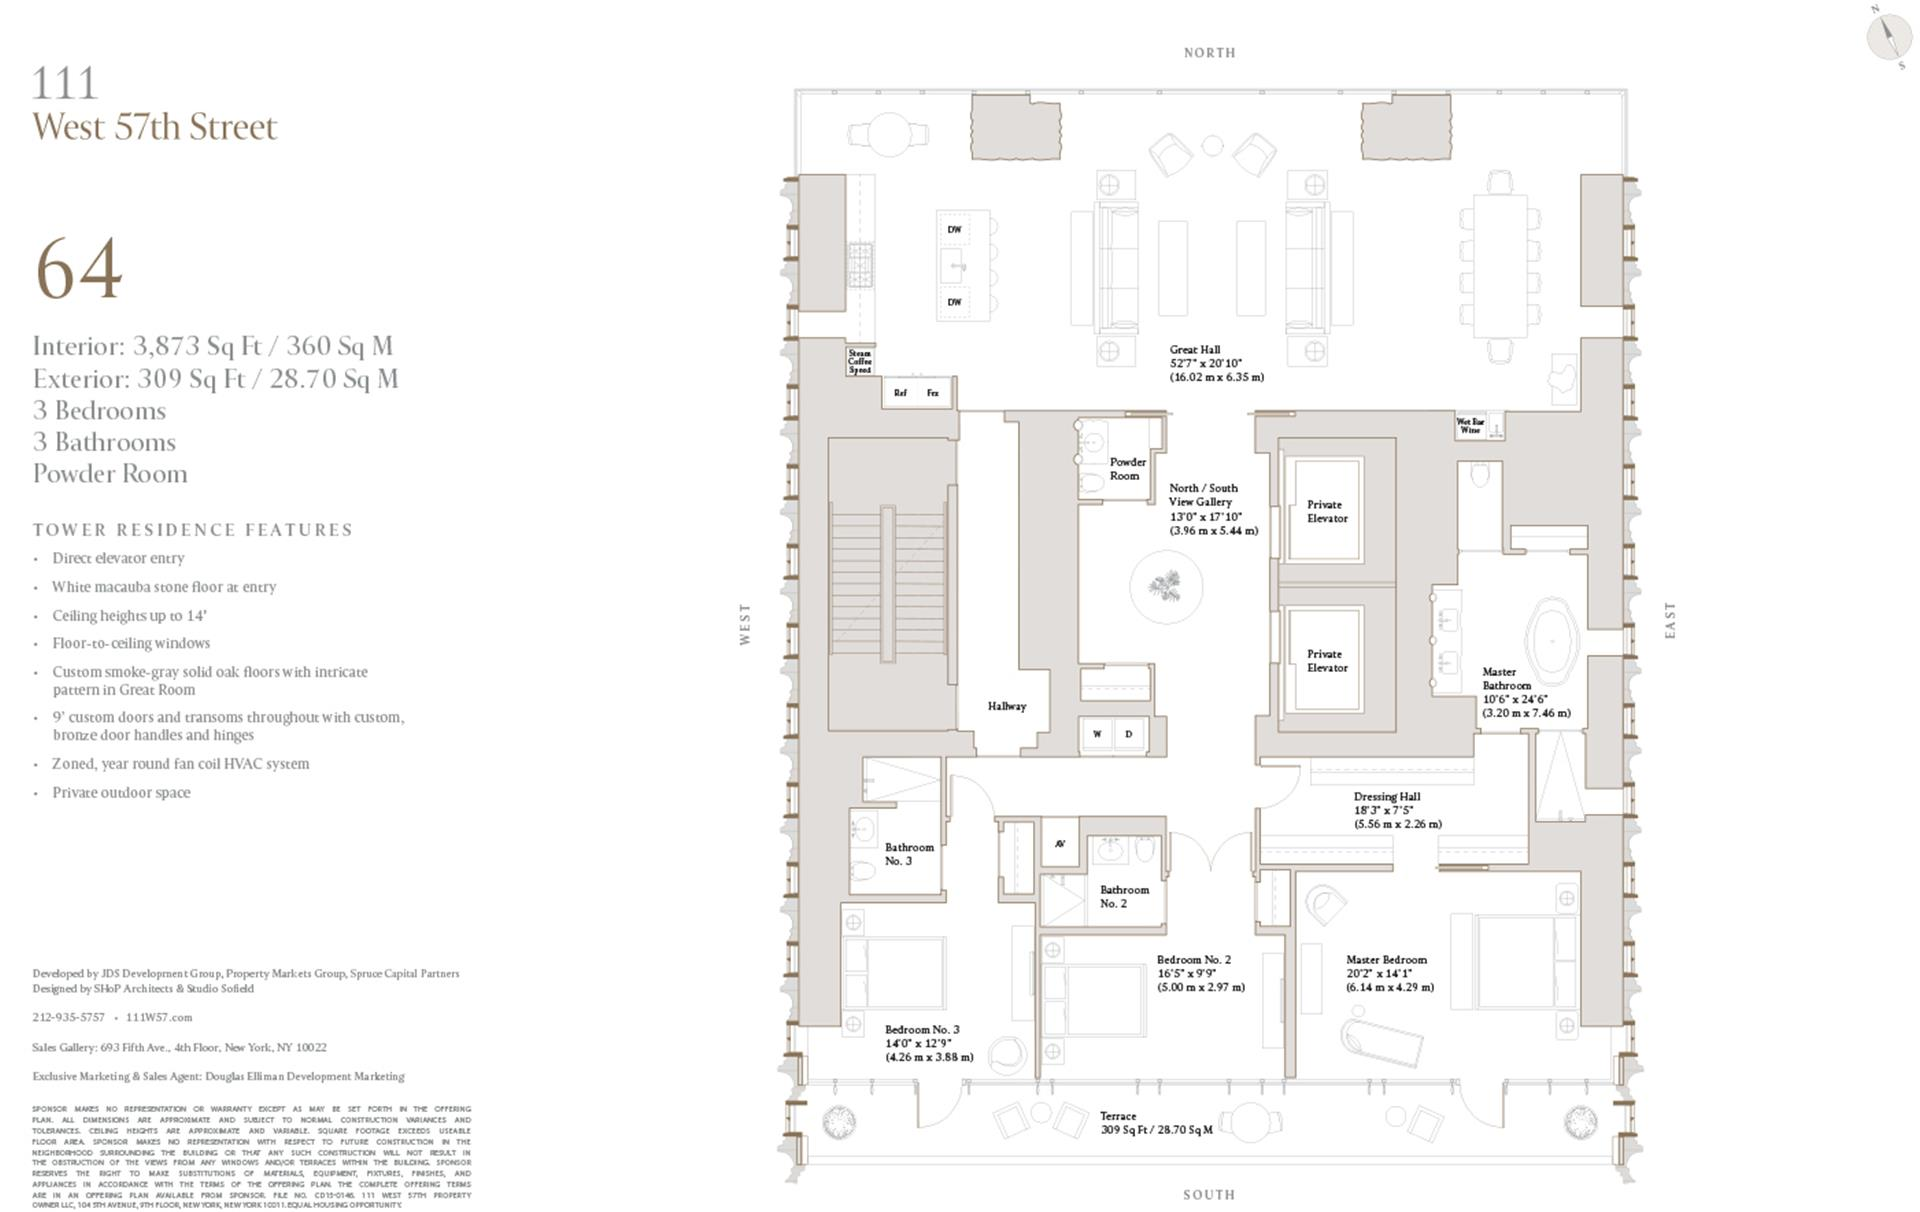 Floor plan of 111 West 57th St, 64 - Central Park South, New York